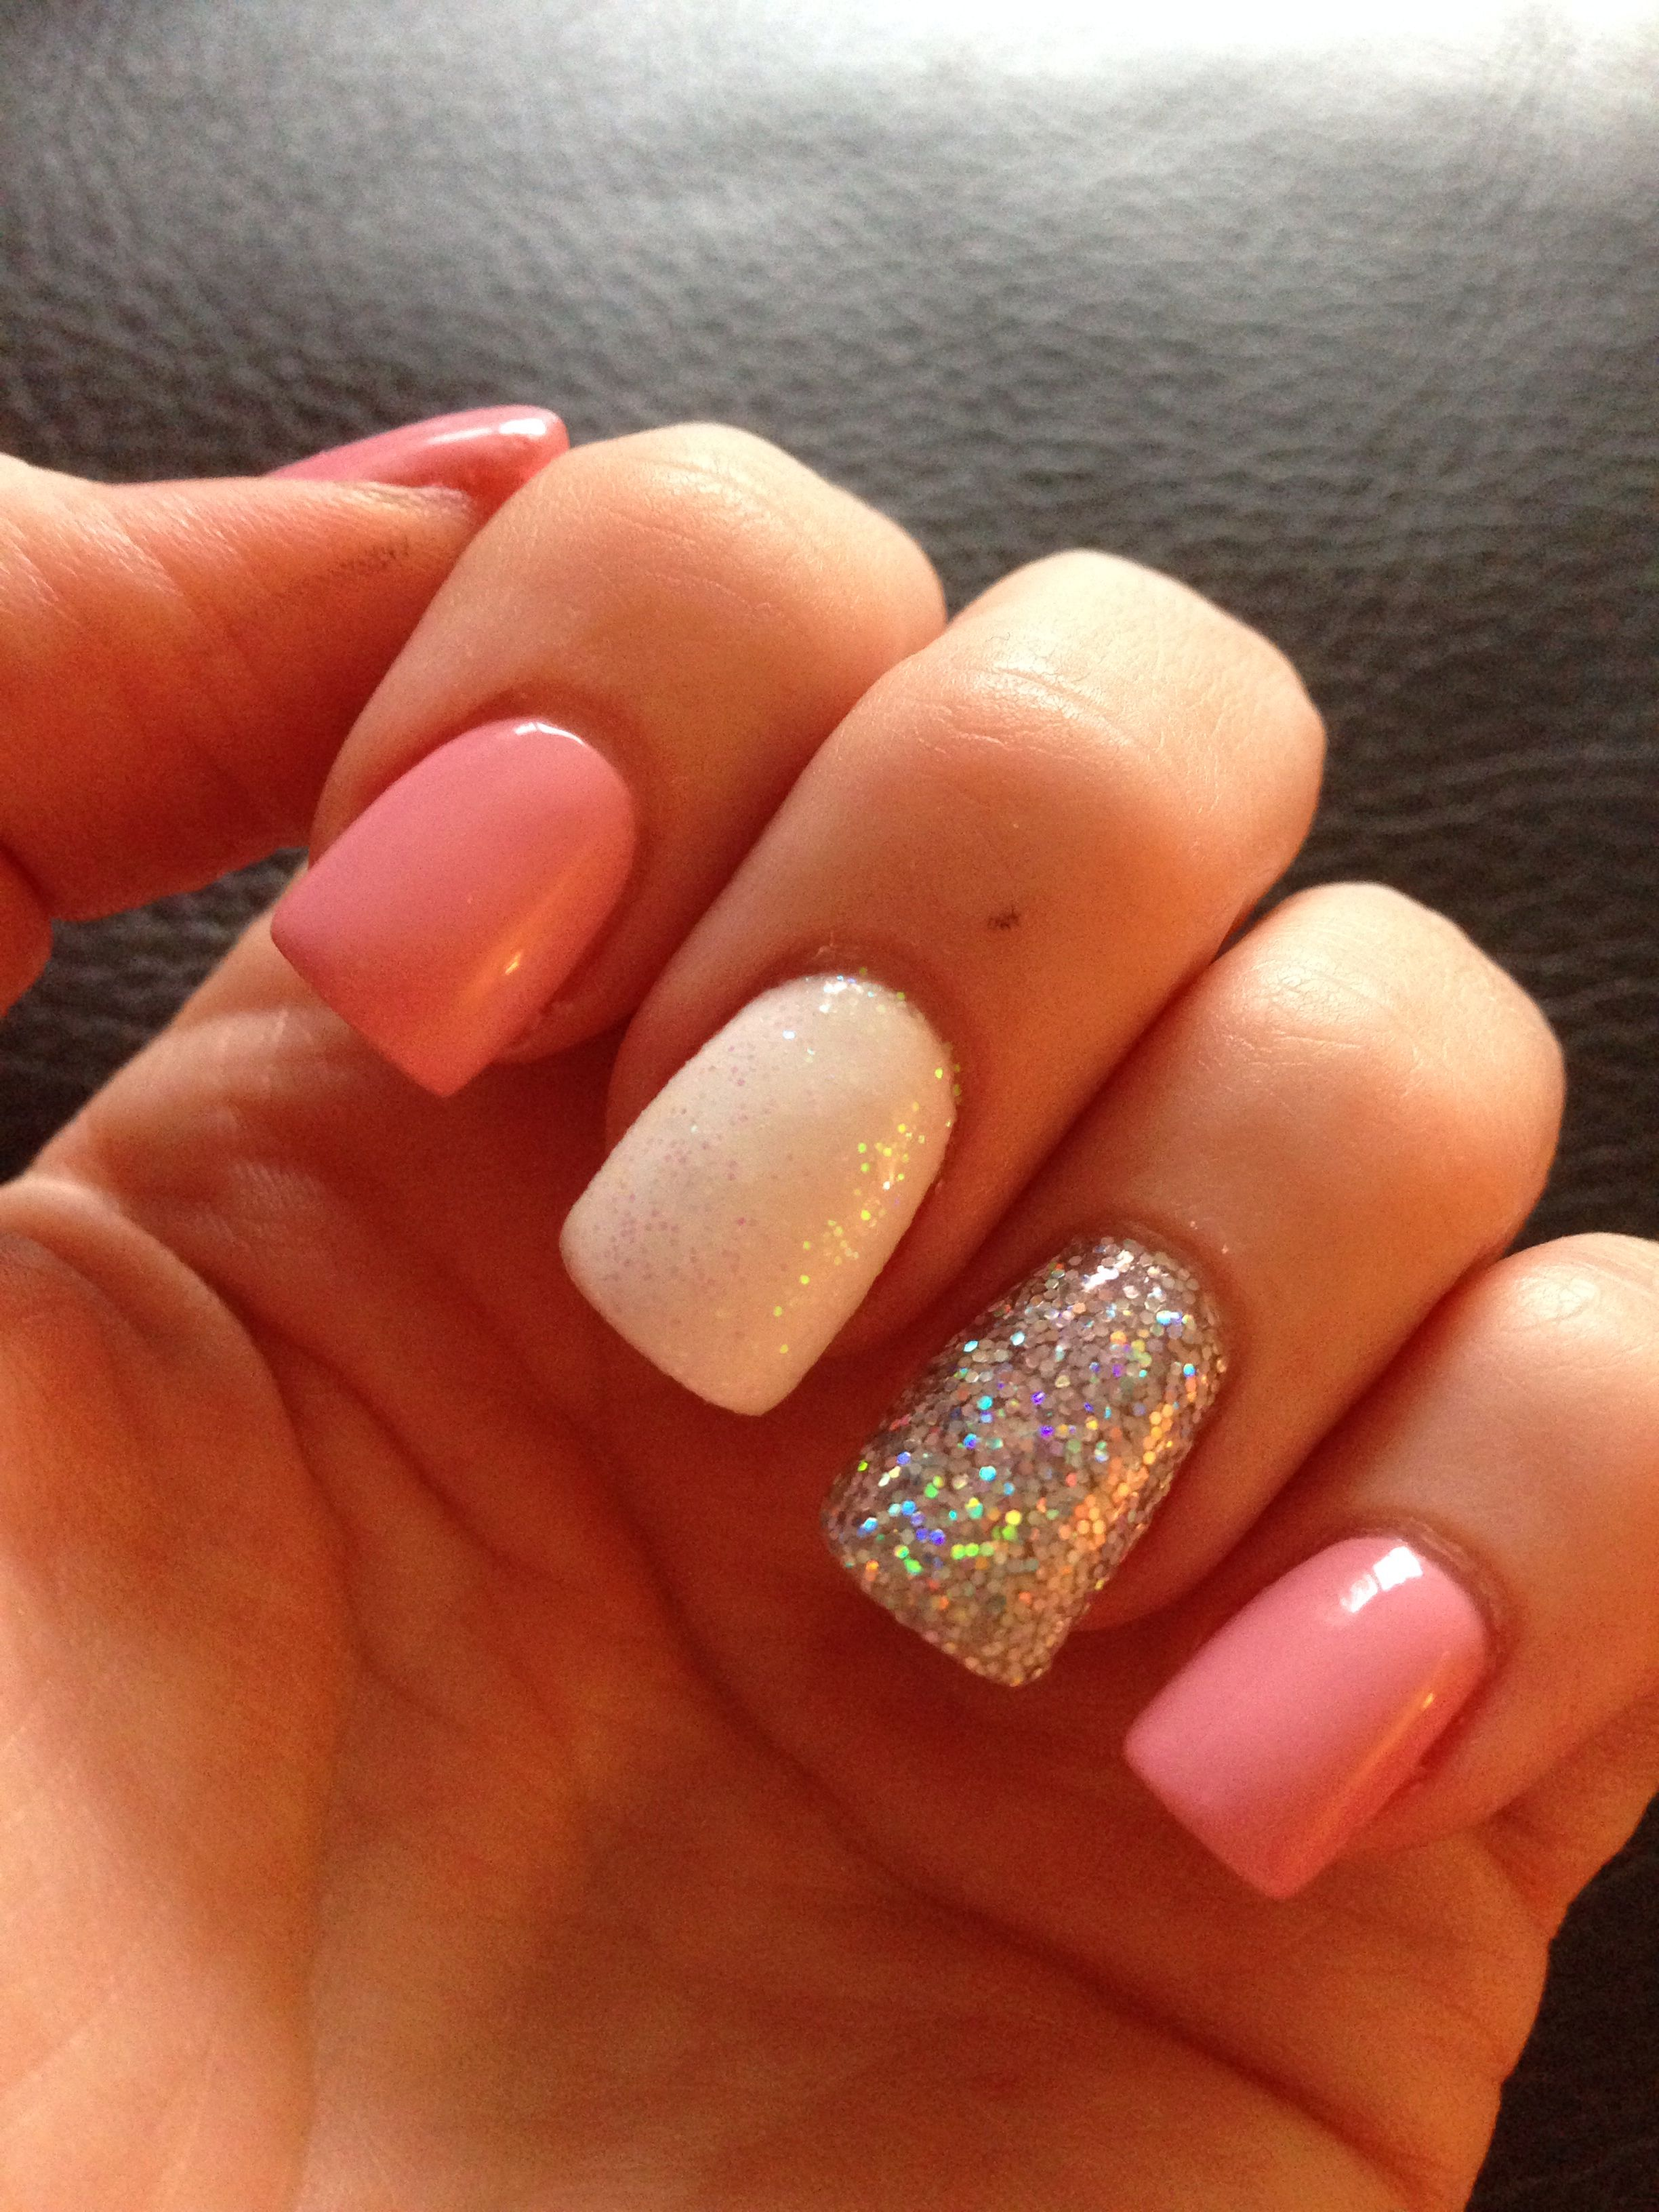 Super girly, pin, white and glitter acrylics :)